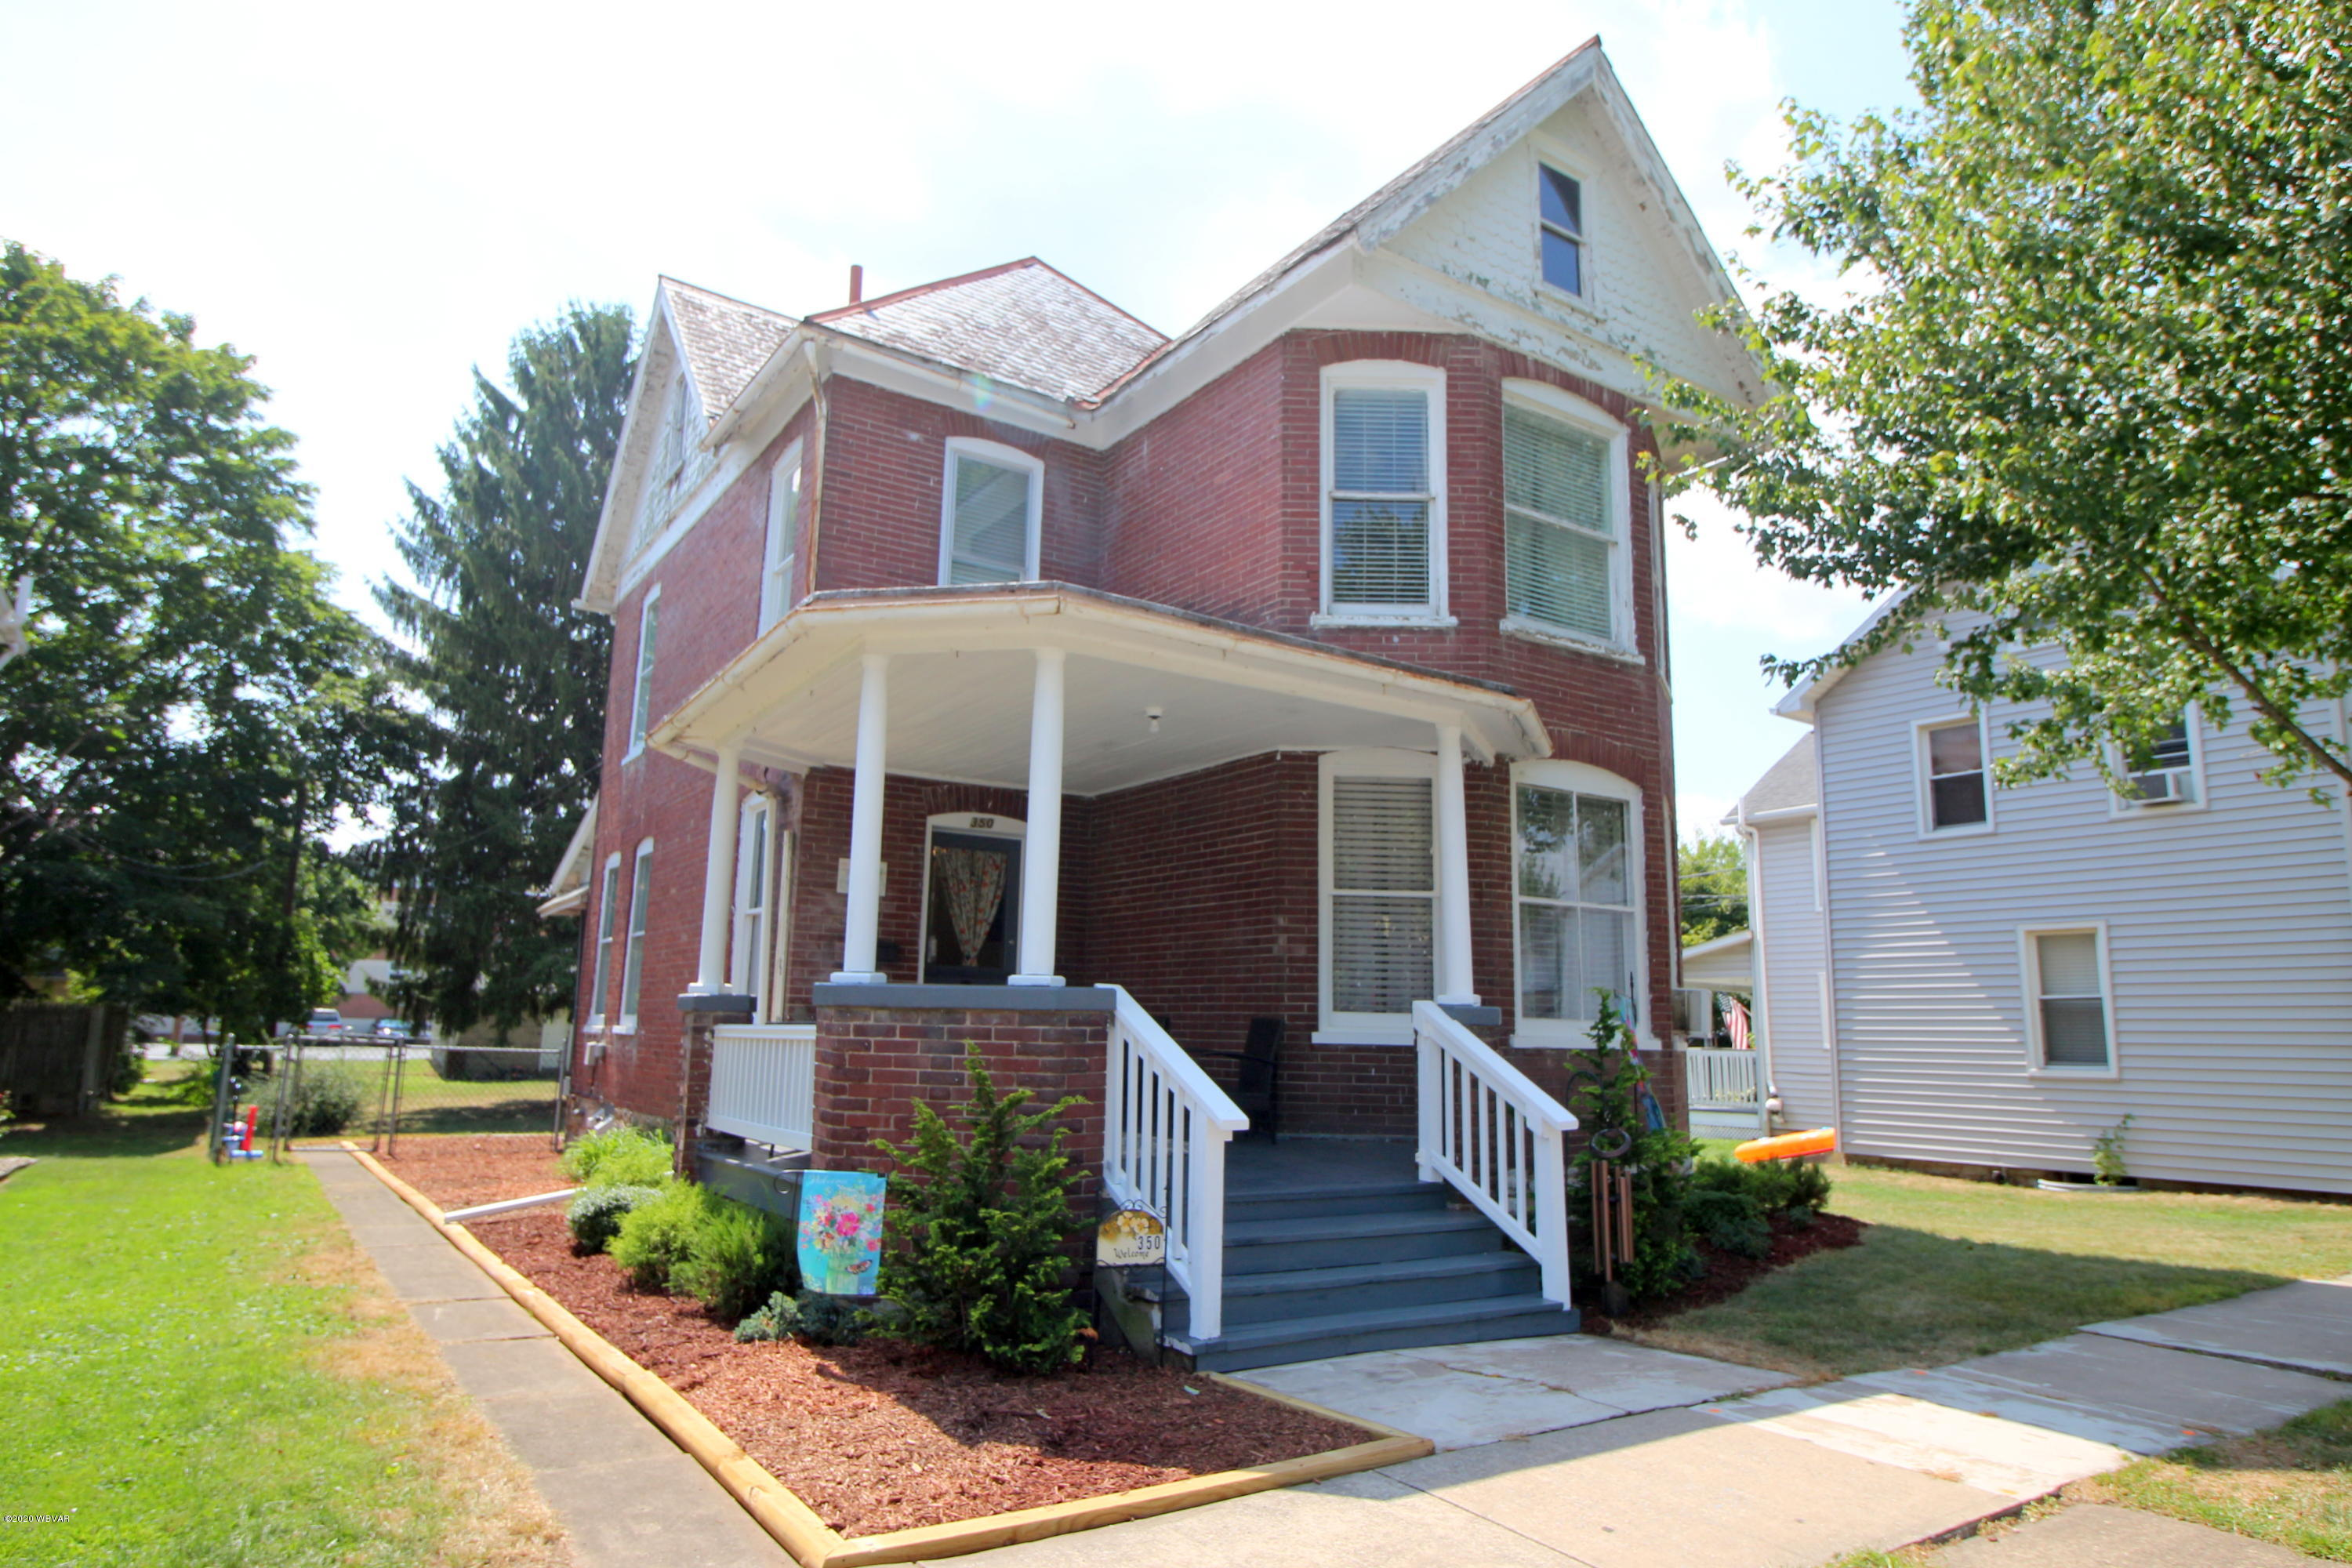 350 CHERRY STREET, Montoursville, PA 17754, 3 Bedrooms Bedrooms, ,2 BathroomsBathrooms,Residential,For sale,CHERRY,WB-90974